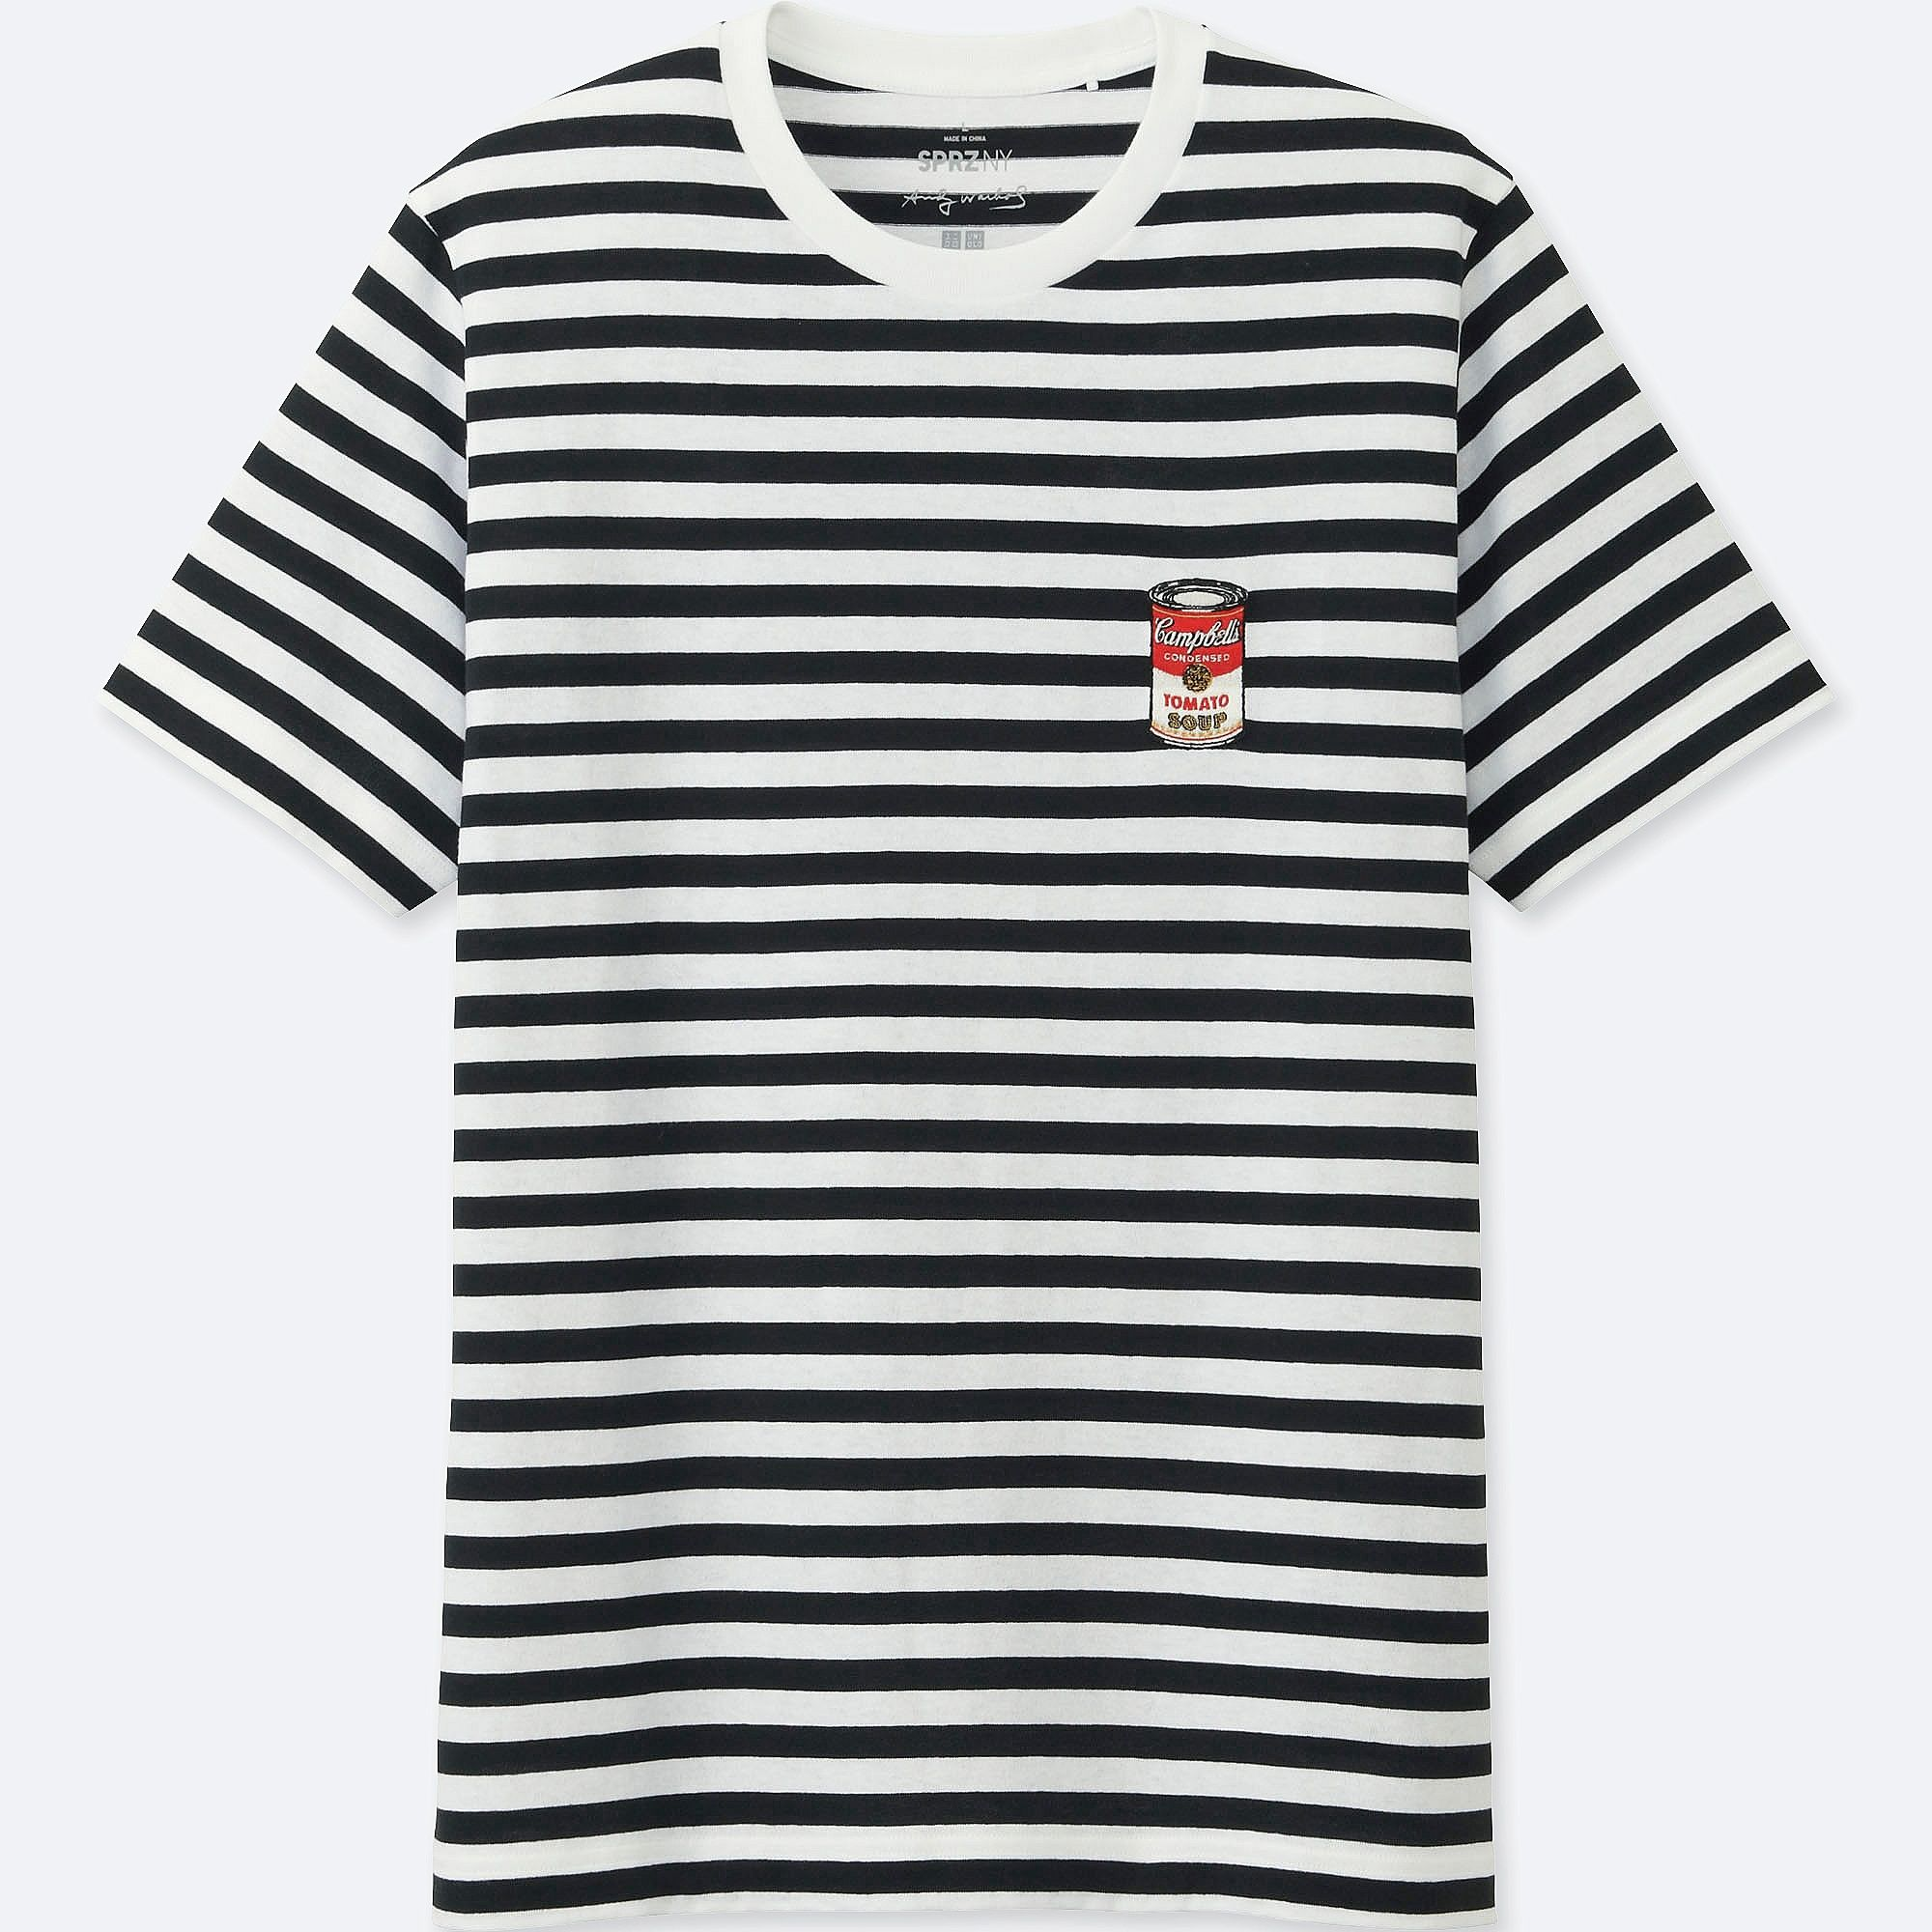 13f6af093 MEN SPRZ NY GRAPHIC T-SHIRT (ANDY WARHOL) | UNIQLO UK | Campbell's ...